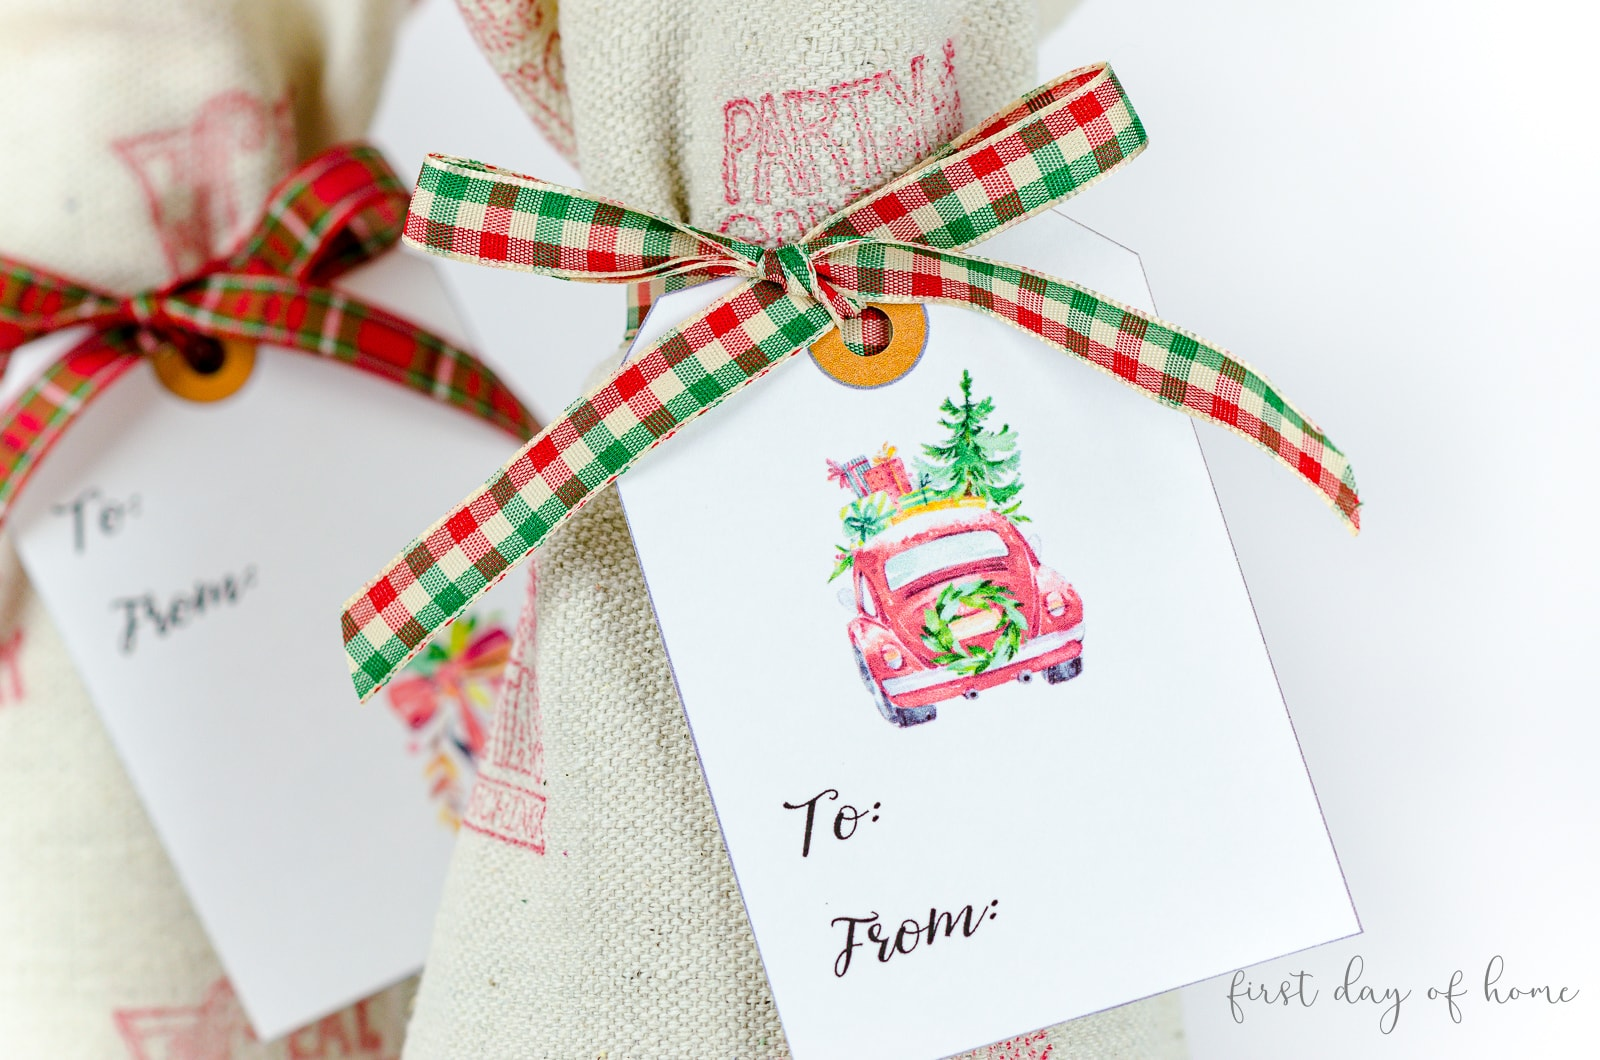 Fabric wine bags with free printable Christmas gift tags attached with plaid ribbon